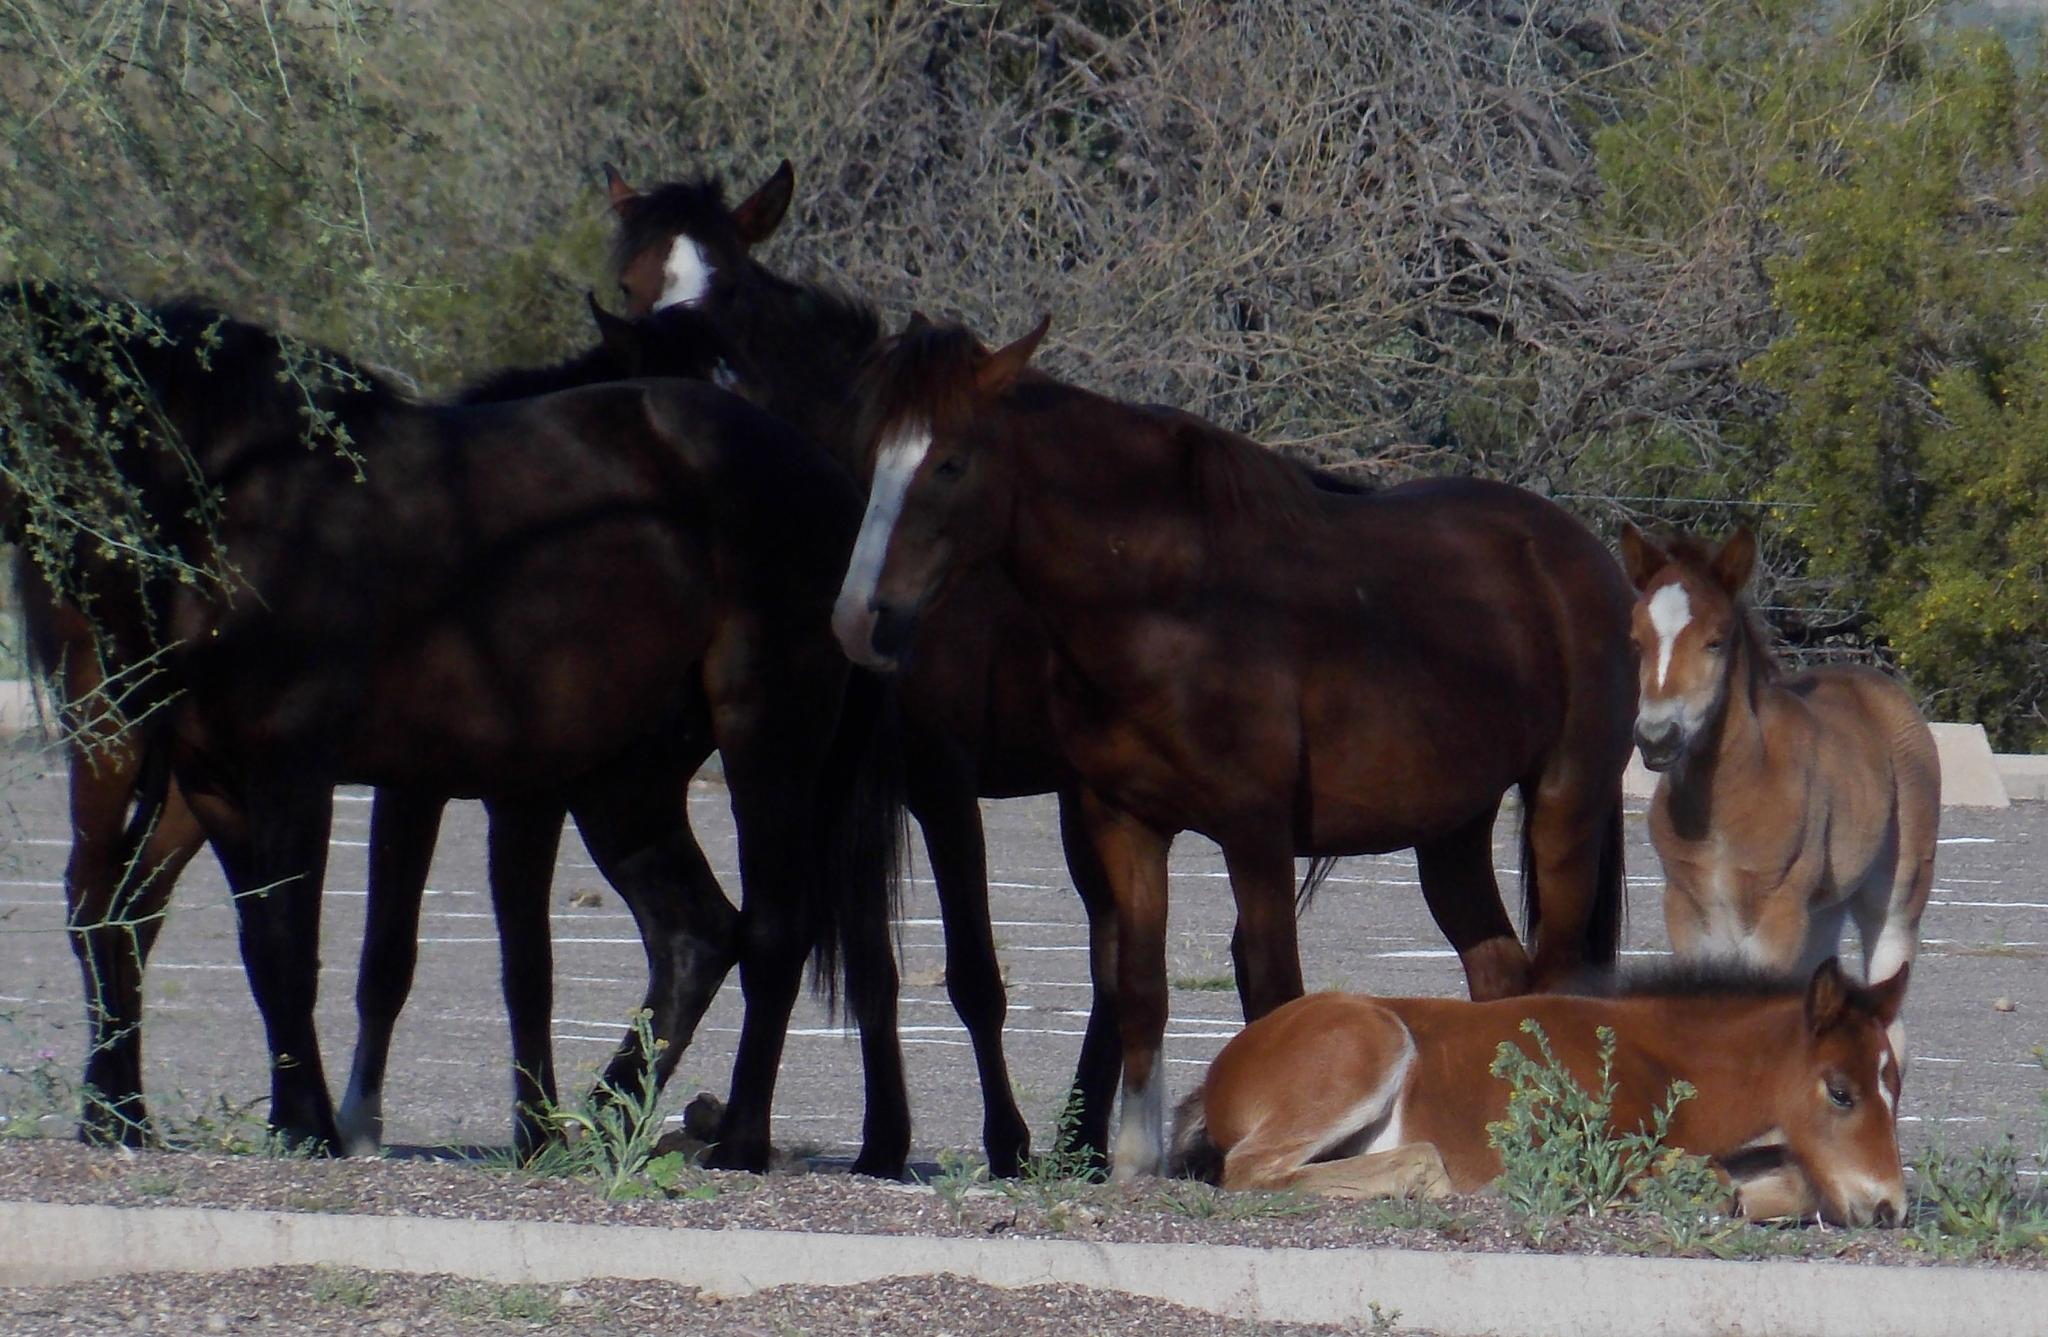 Wild Horses in Arizona by JanetSNeil